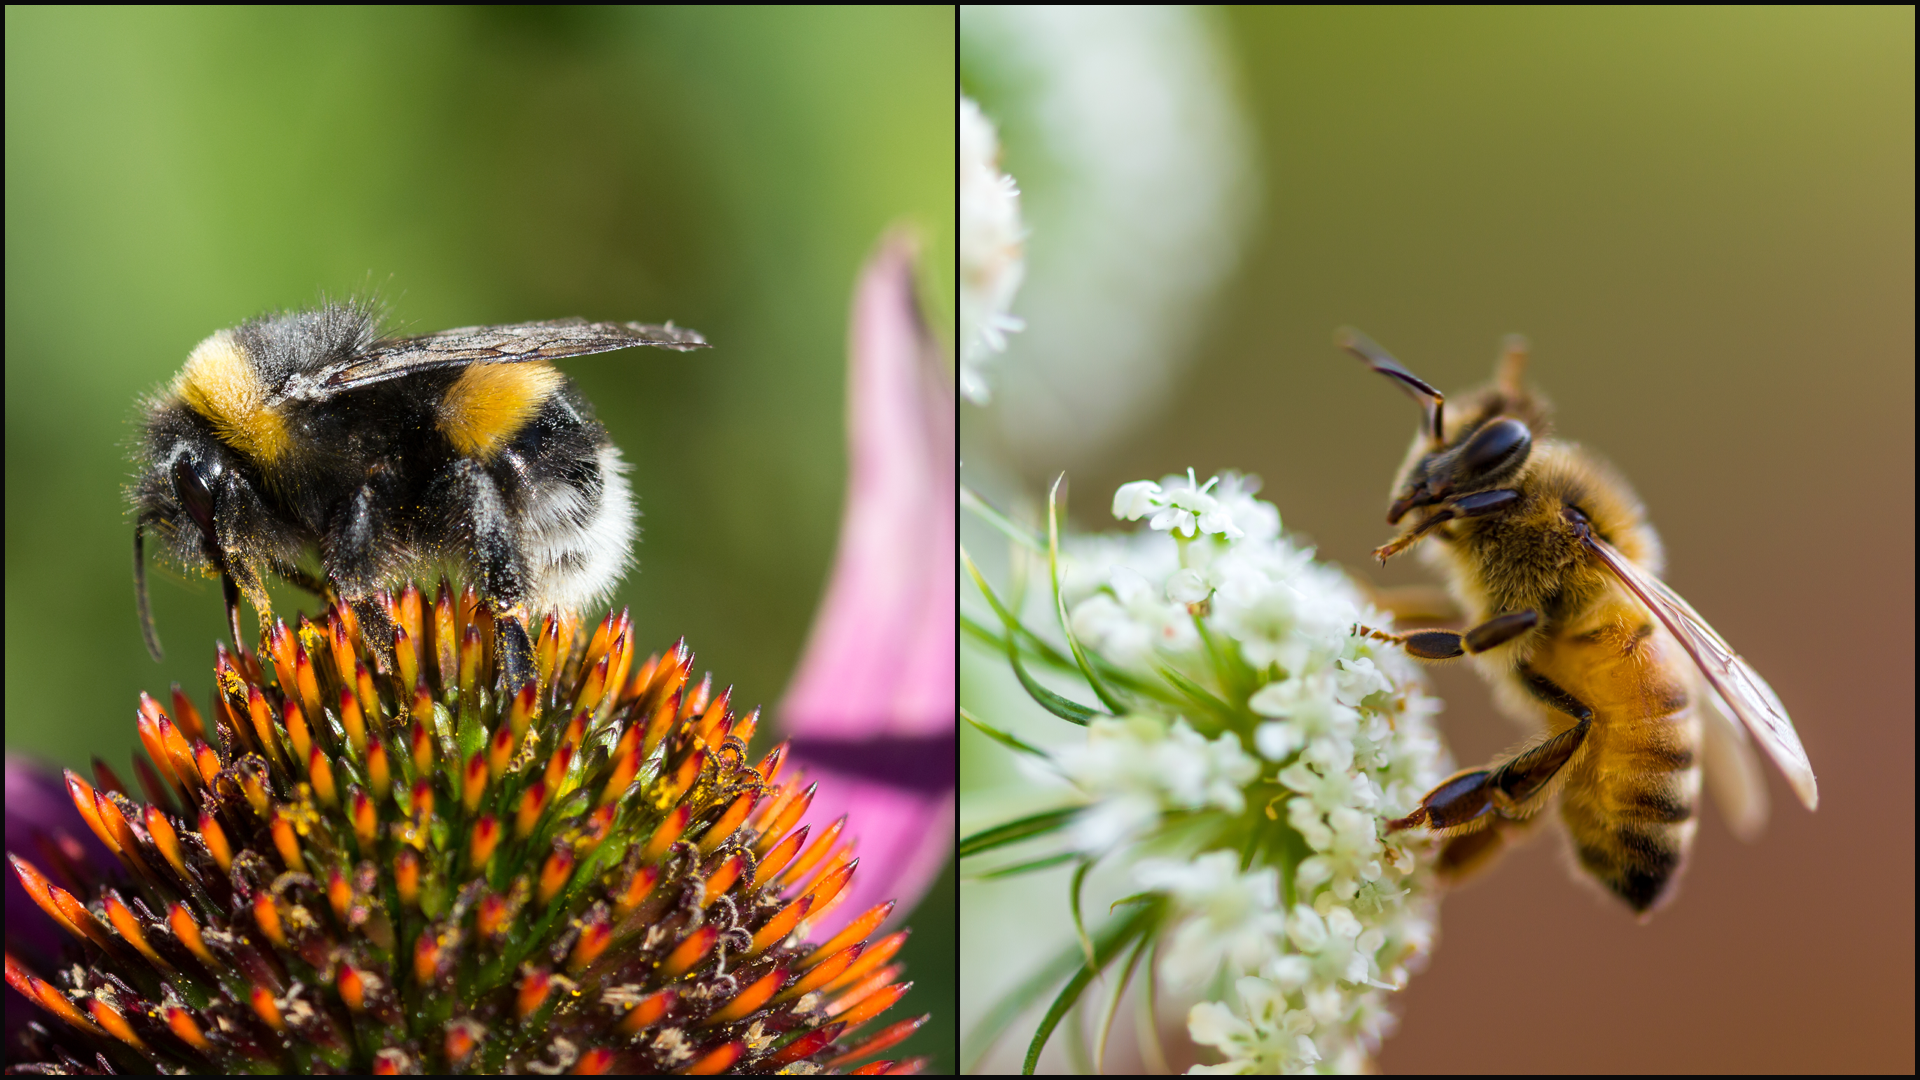 Bumblebees Vs. Honeybees